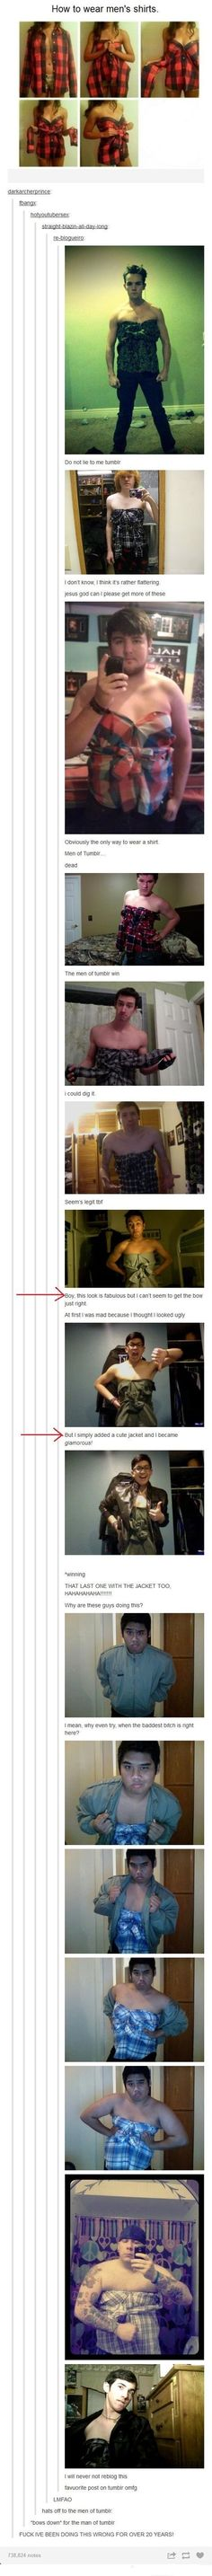 A Girl Posted How To Wear Mens Shirts? On Tumblr, How The Men On Tumblr Reacts To This is Freaking Awesome.